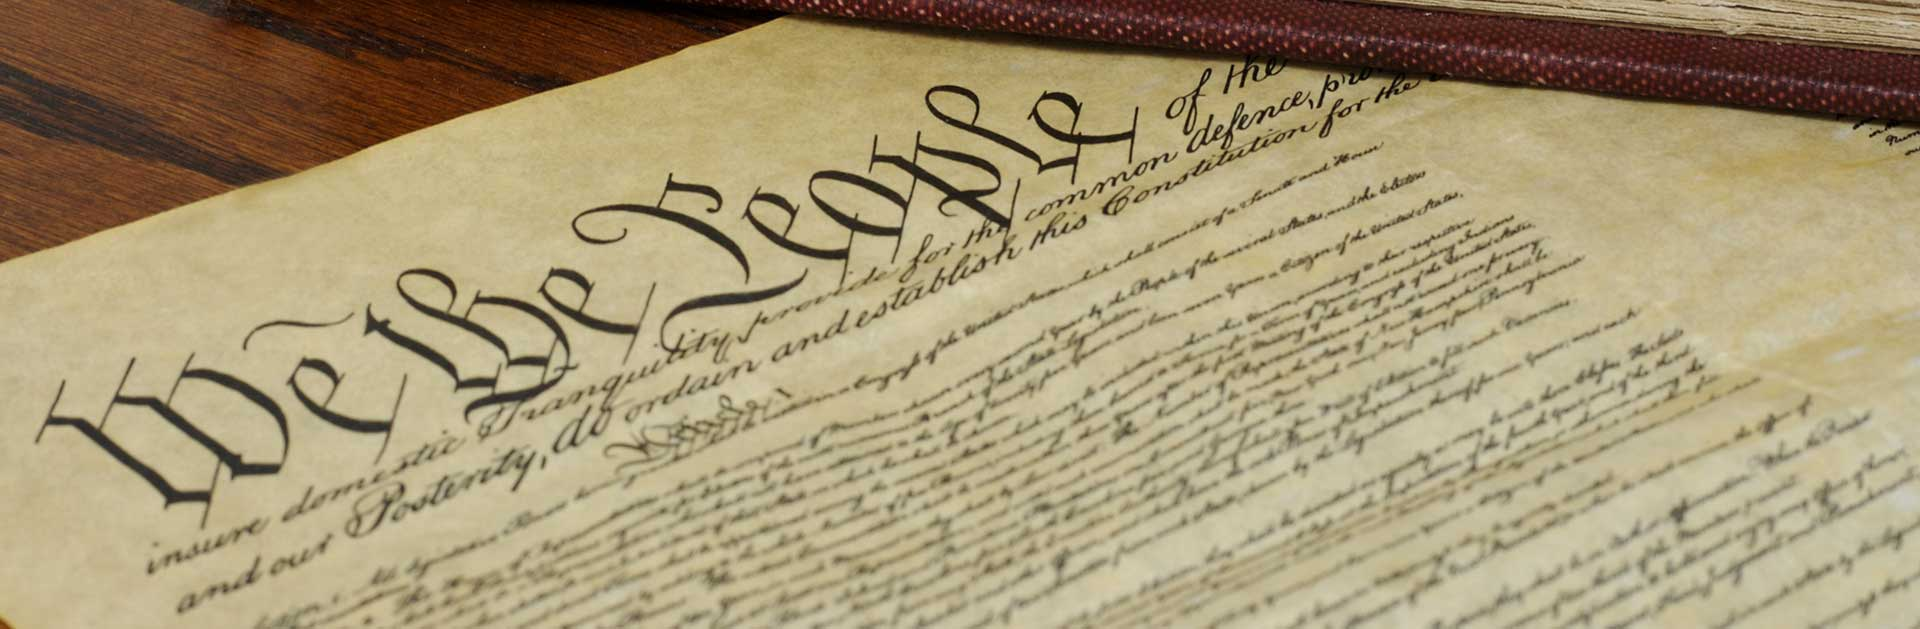 Image of US Constitution document